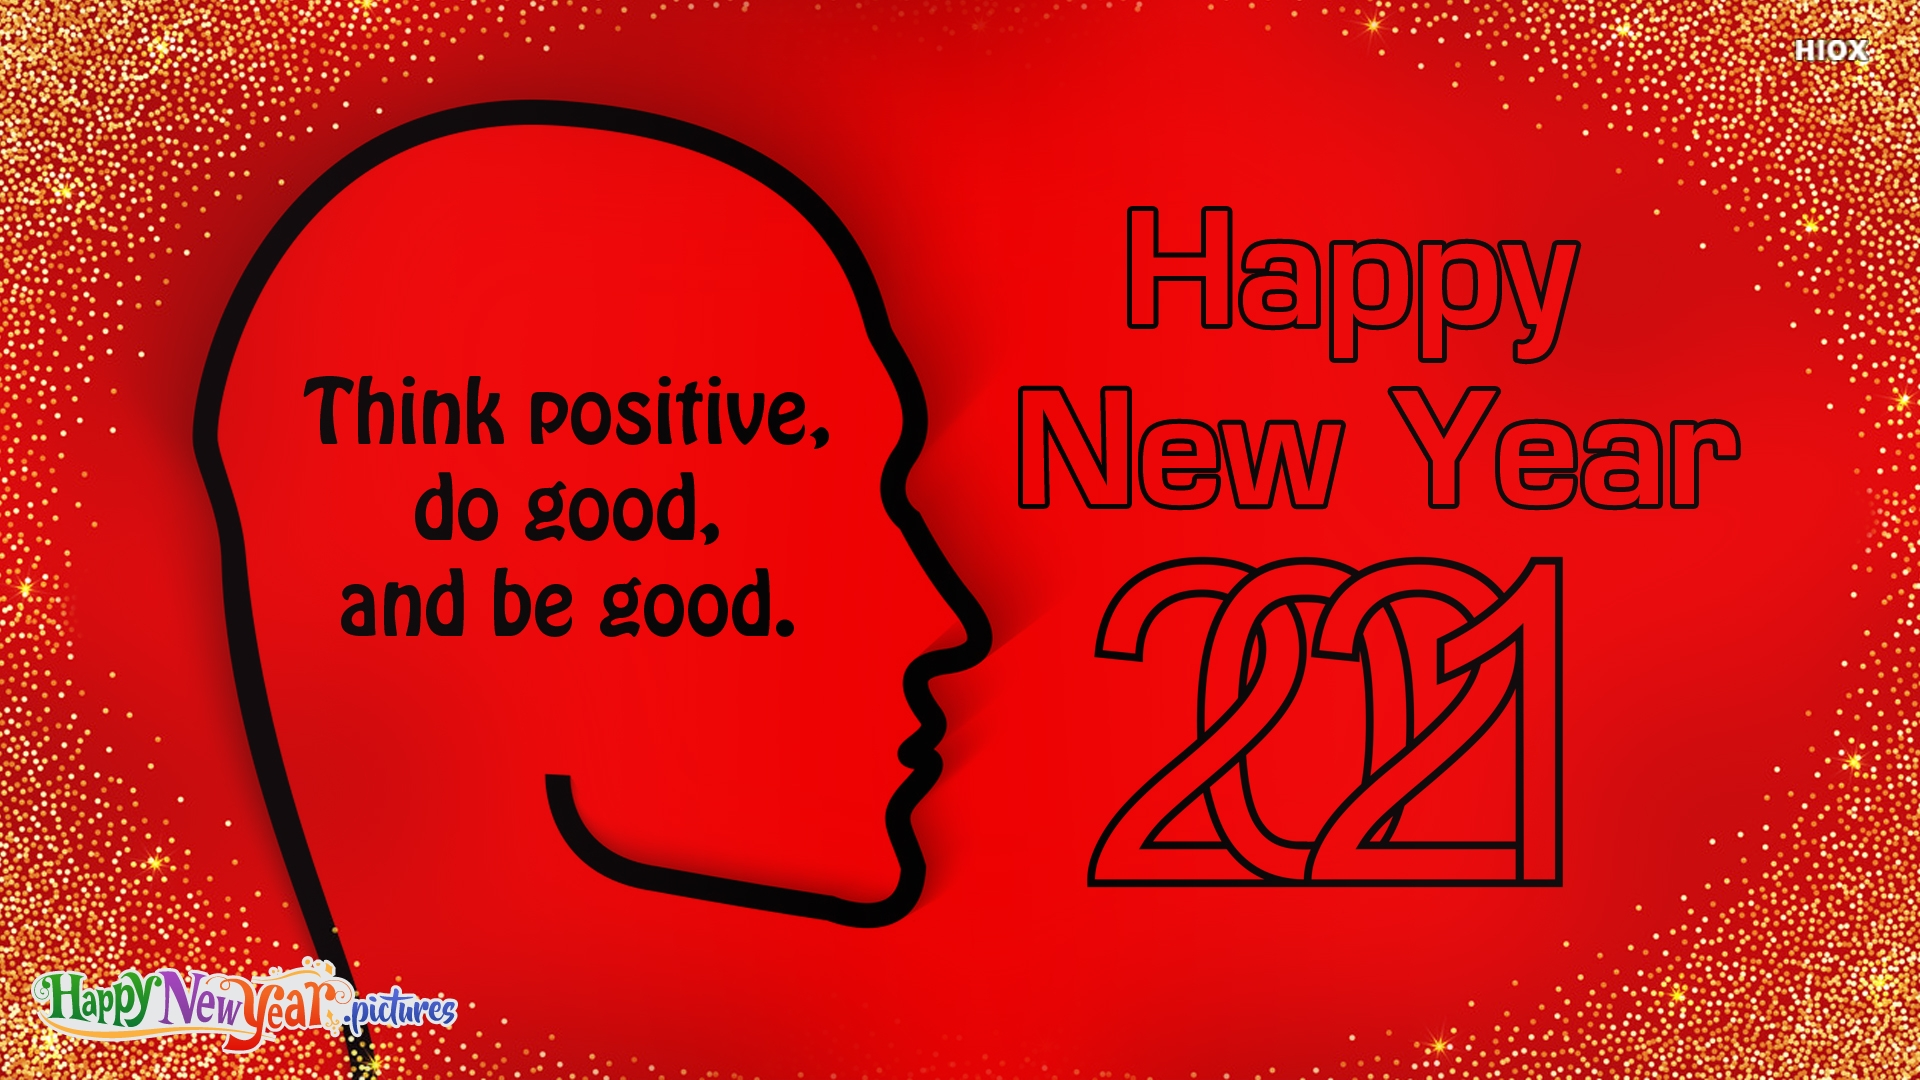 Think Positive, Do Good, and Be Good. Happy New Year 2021!